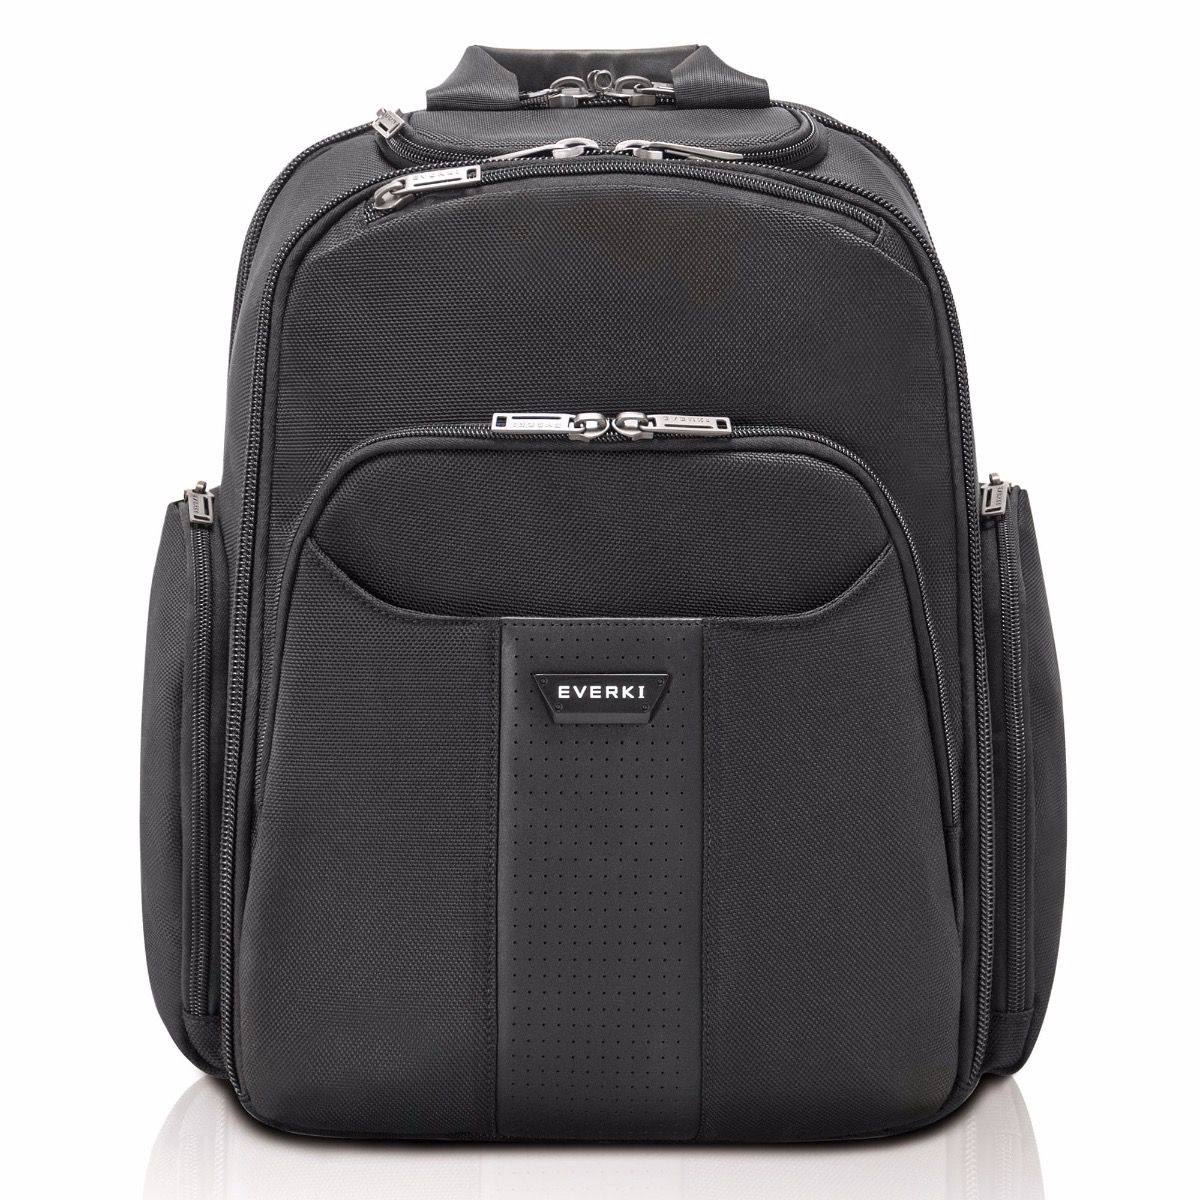 EVERKI Versa 2 Travel Friendly 14 Inch Laptop Backpack